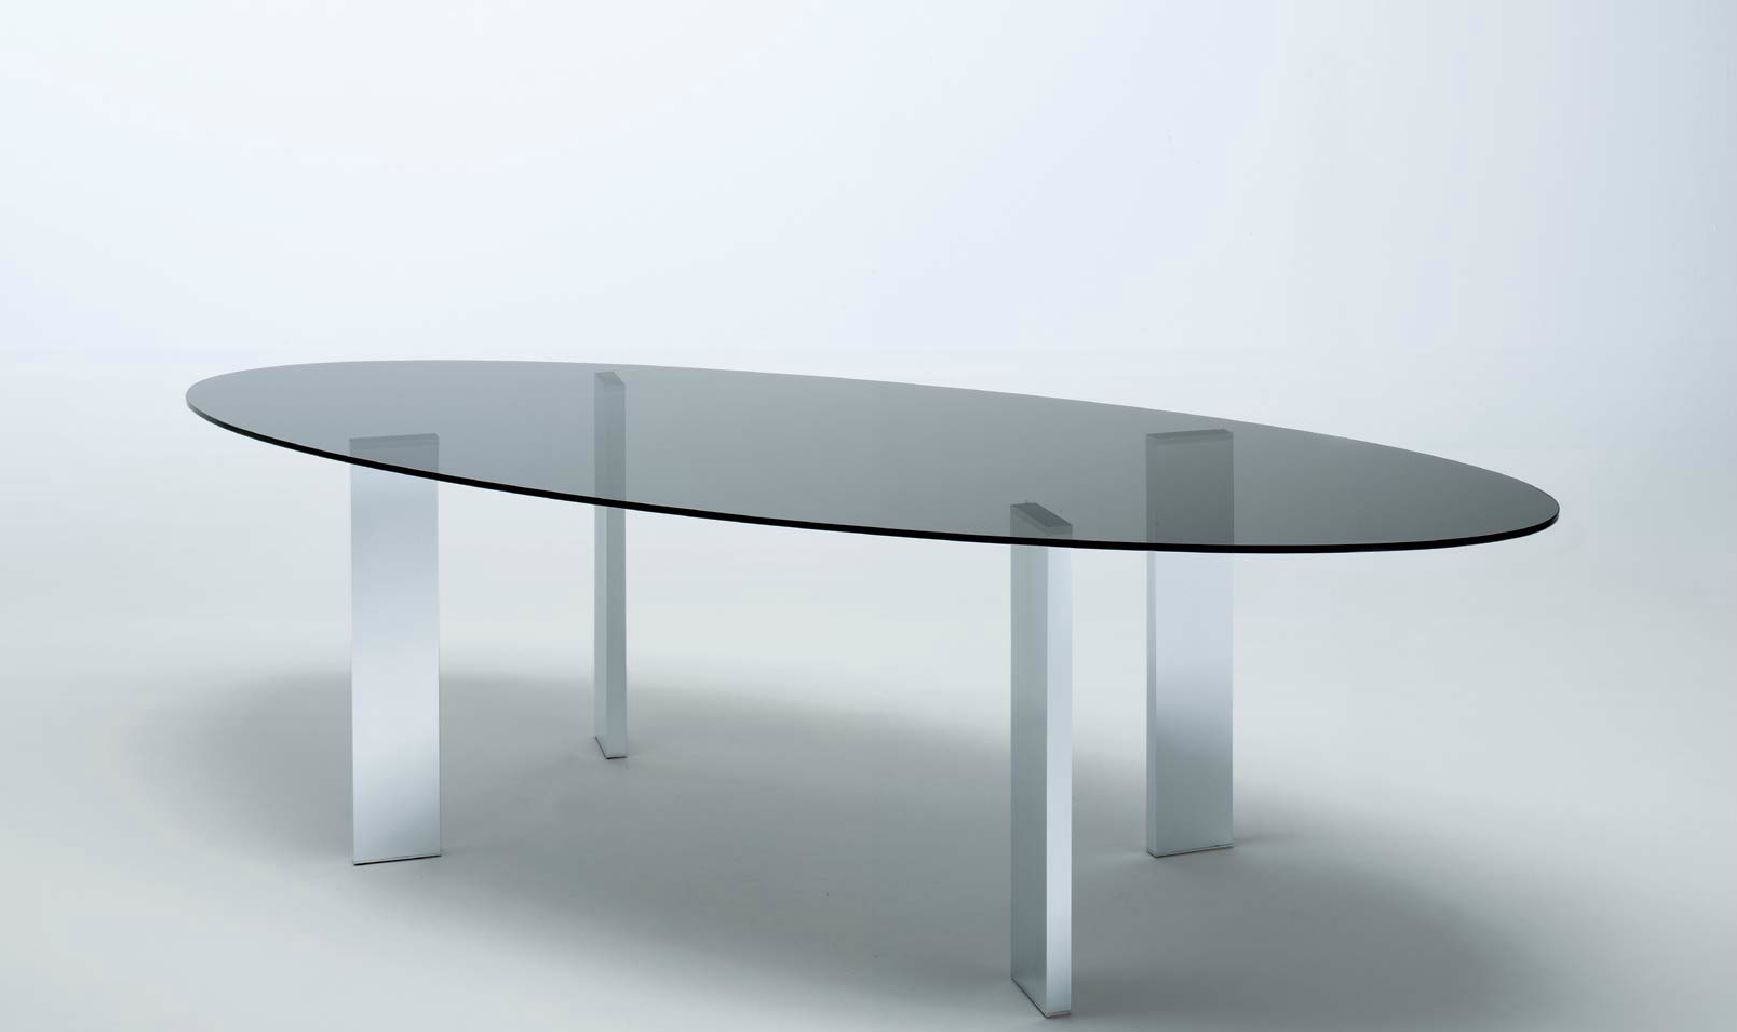 Dining Table With Oval Glass Top Metal Legs Taul Misuraemme Luxury Furniture Mr